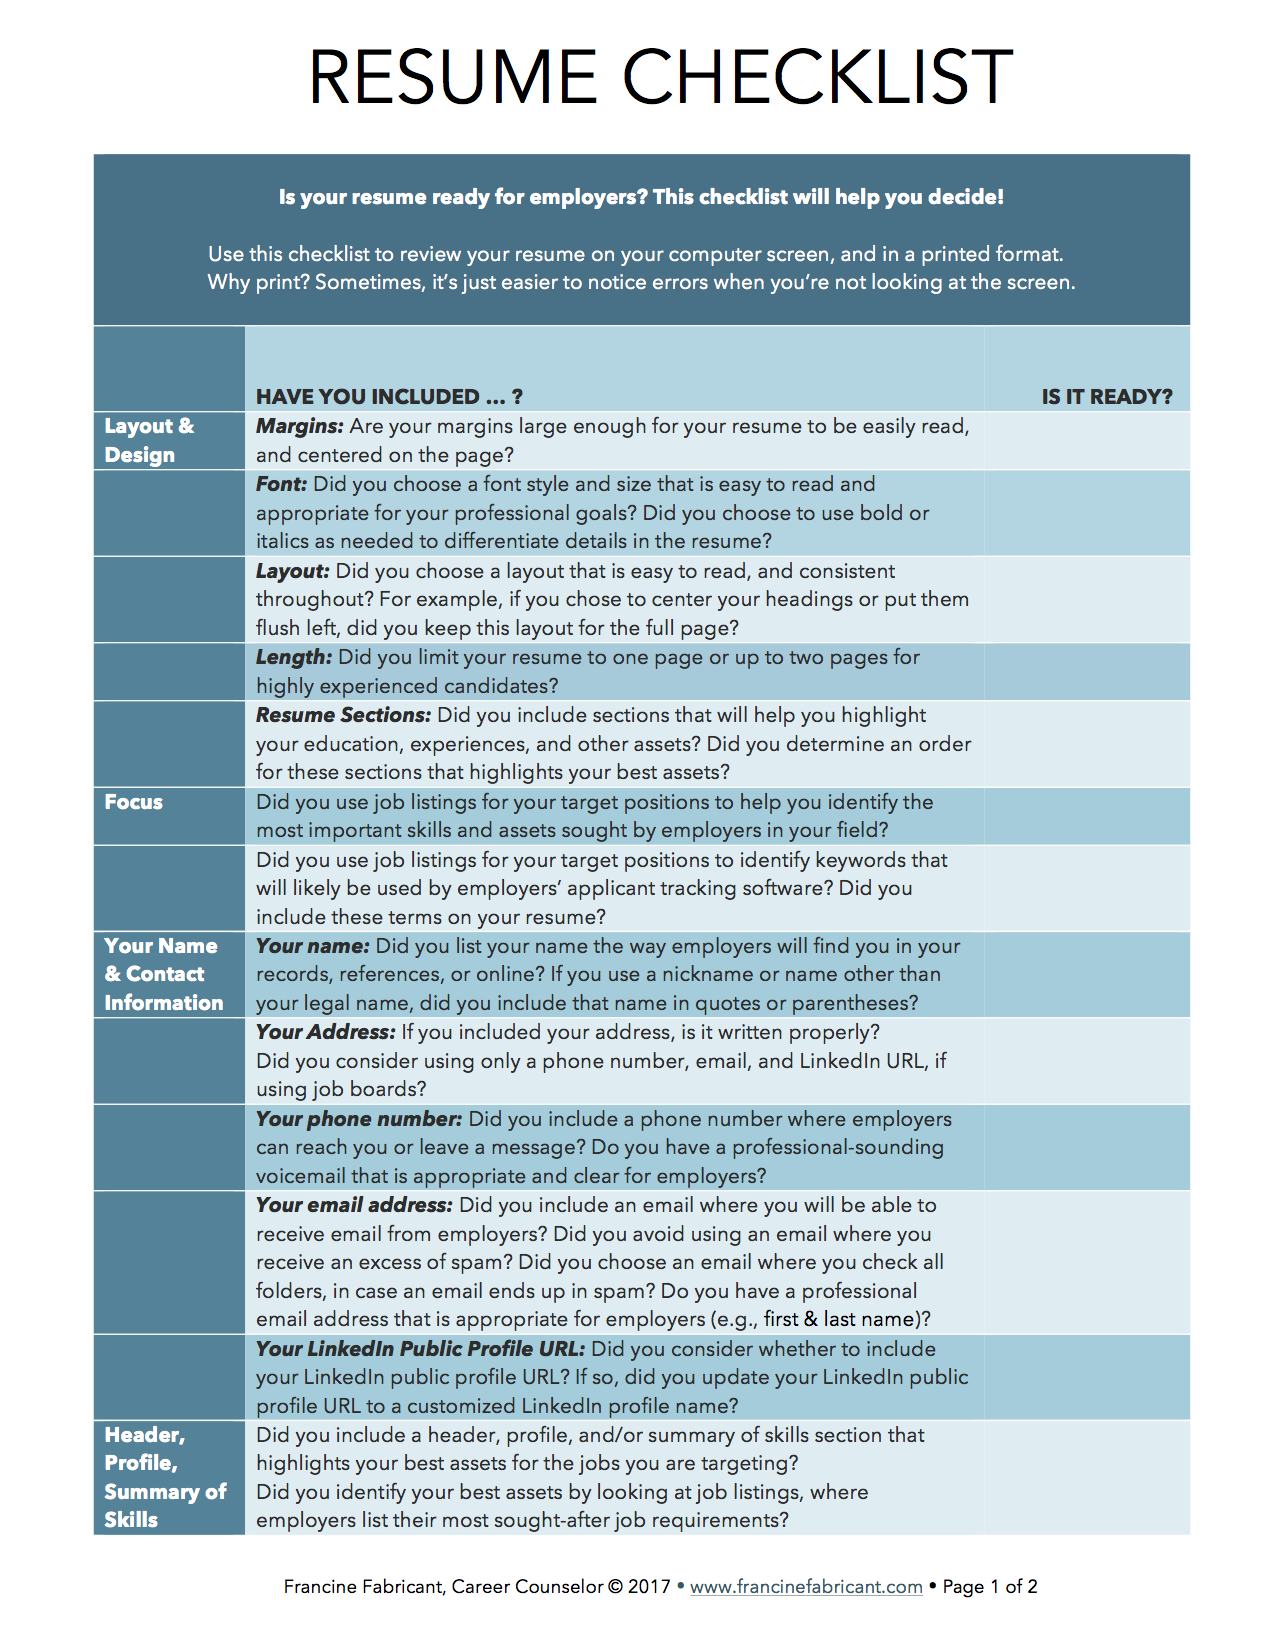 francine fabricant job search resume checklist of transferable skills writing best Resume Resume Checklist Of Transferable Skills